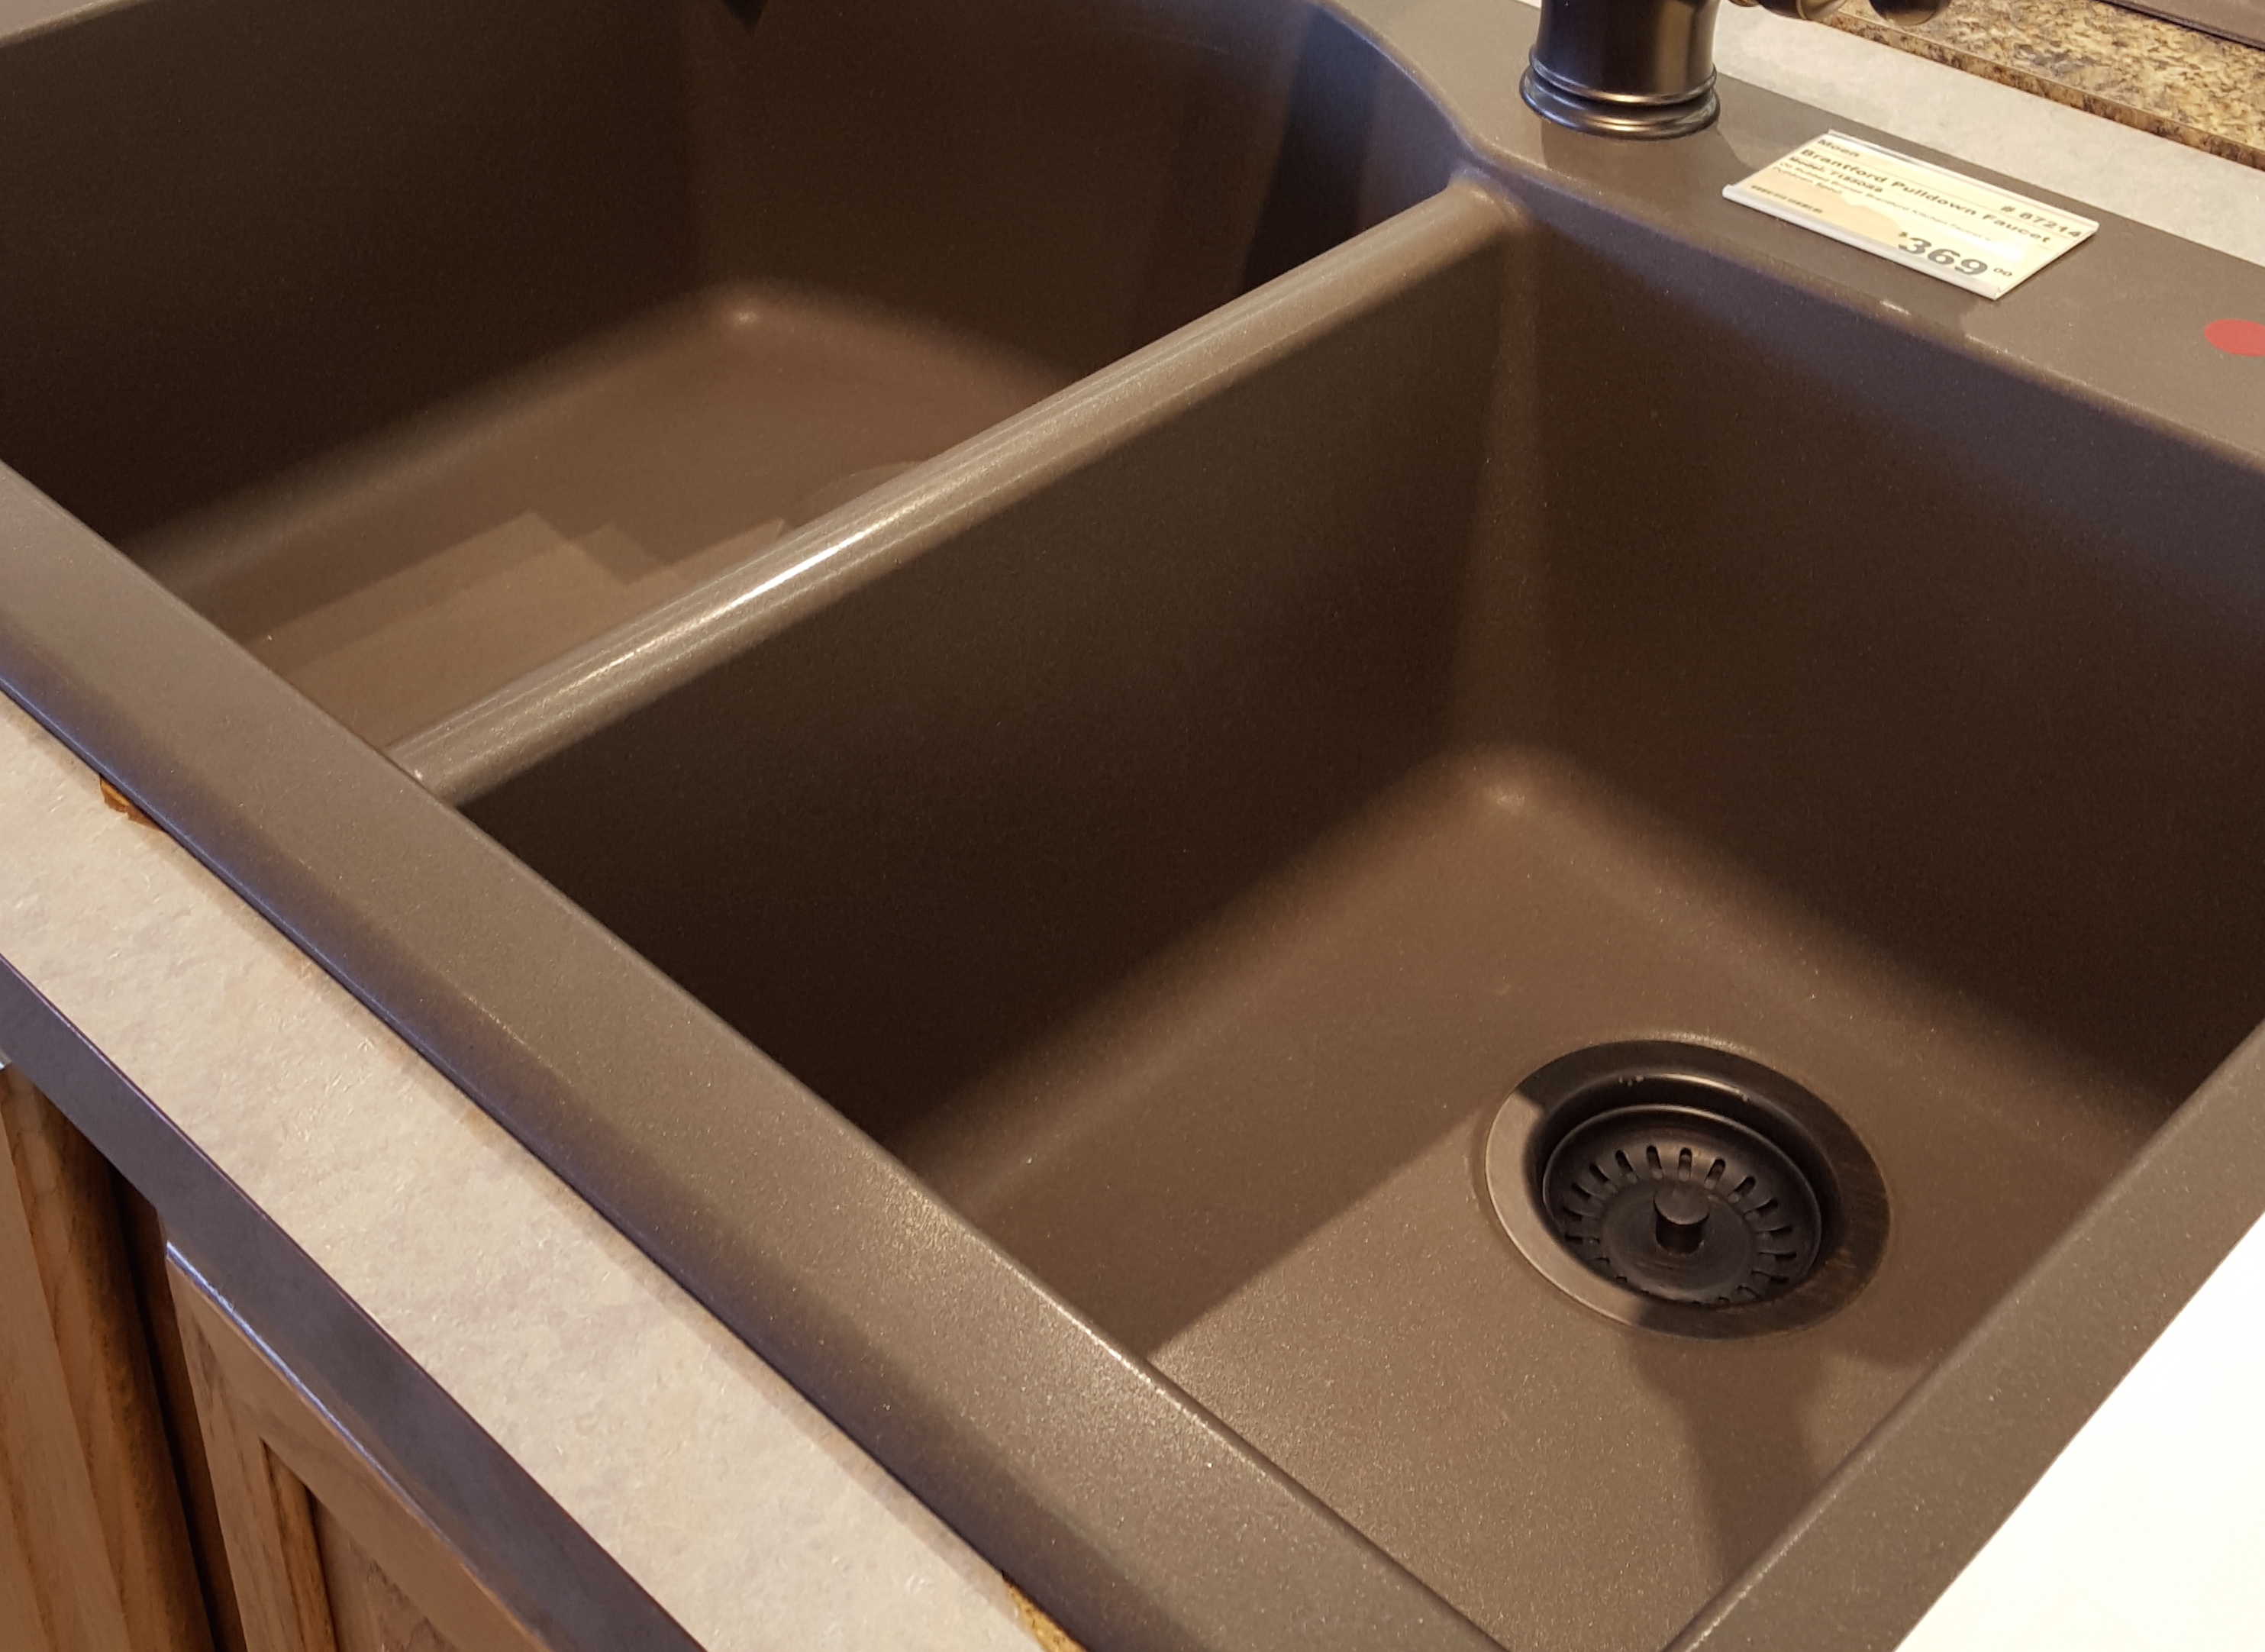 Peachy How To Shop For Your Kitchen Sink Handy Man Download Free Architecture Designs Sospemadebymaigaardcom